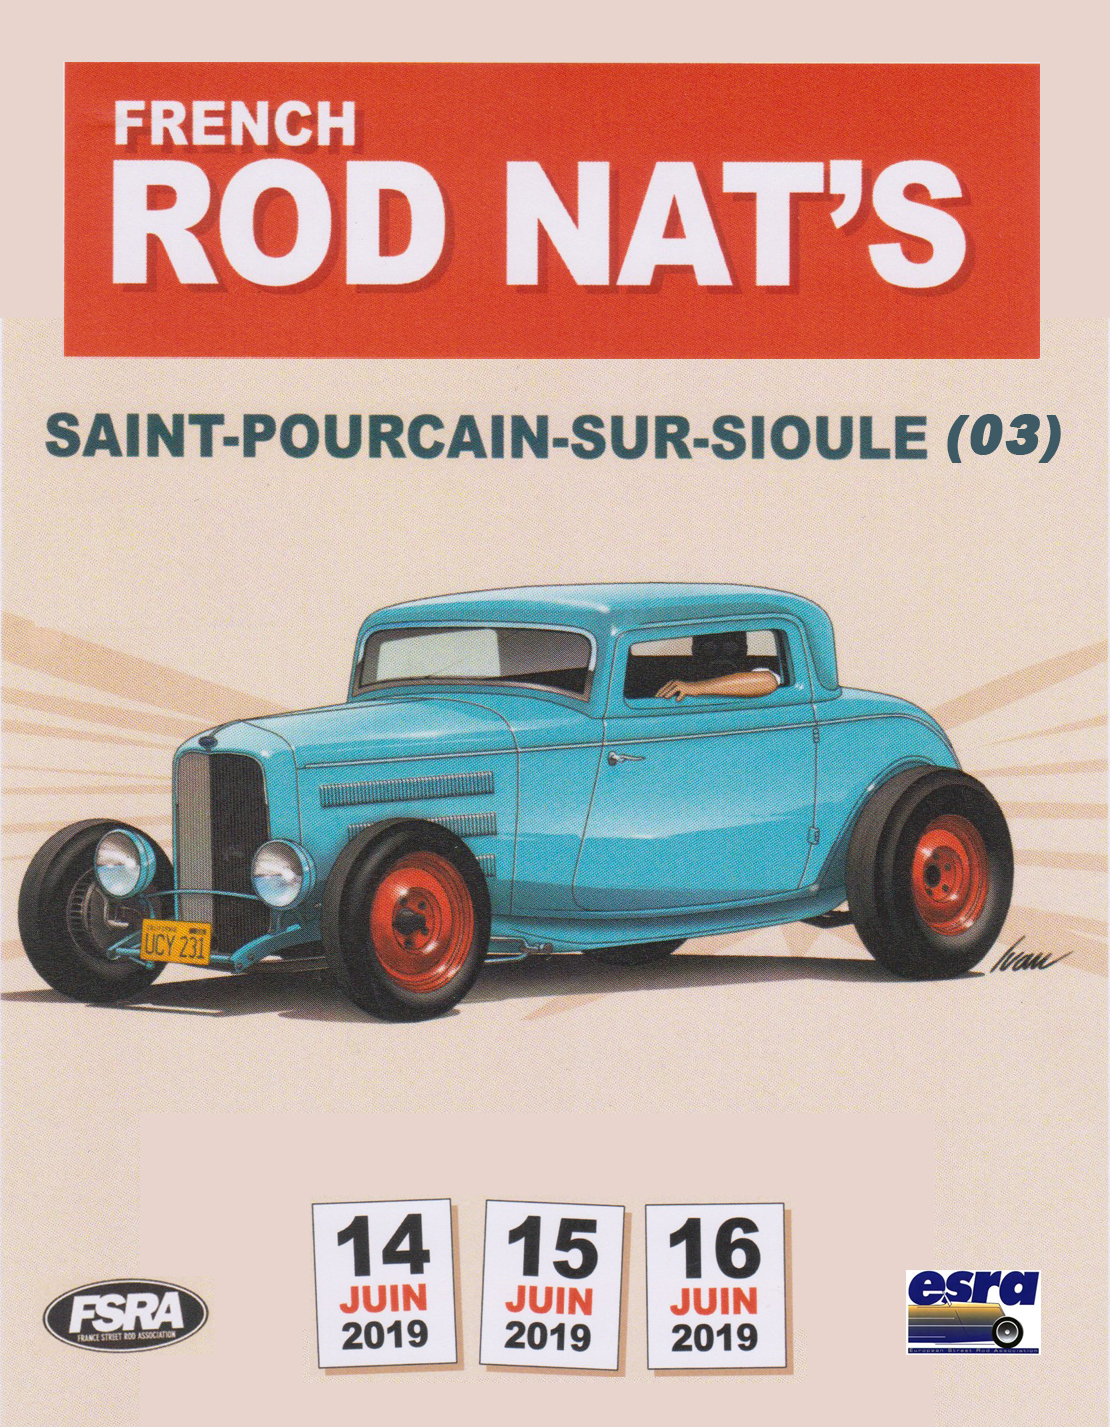 Rods Nats 2019 - flyer